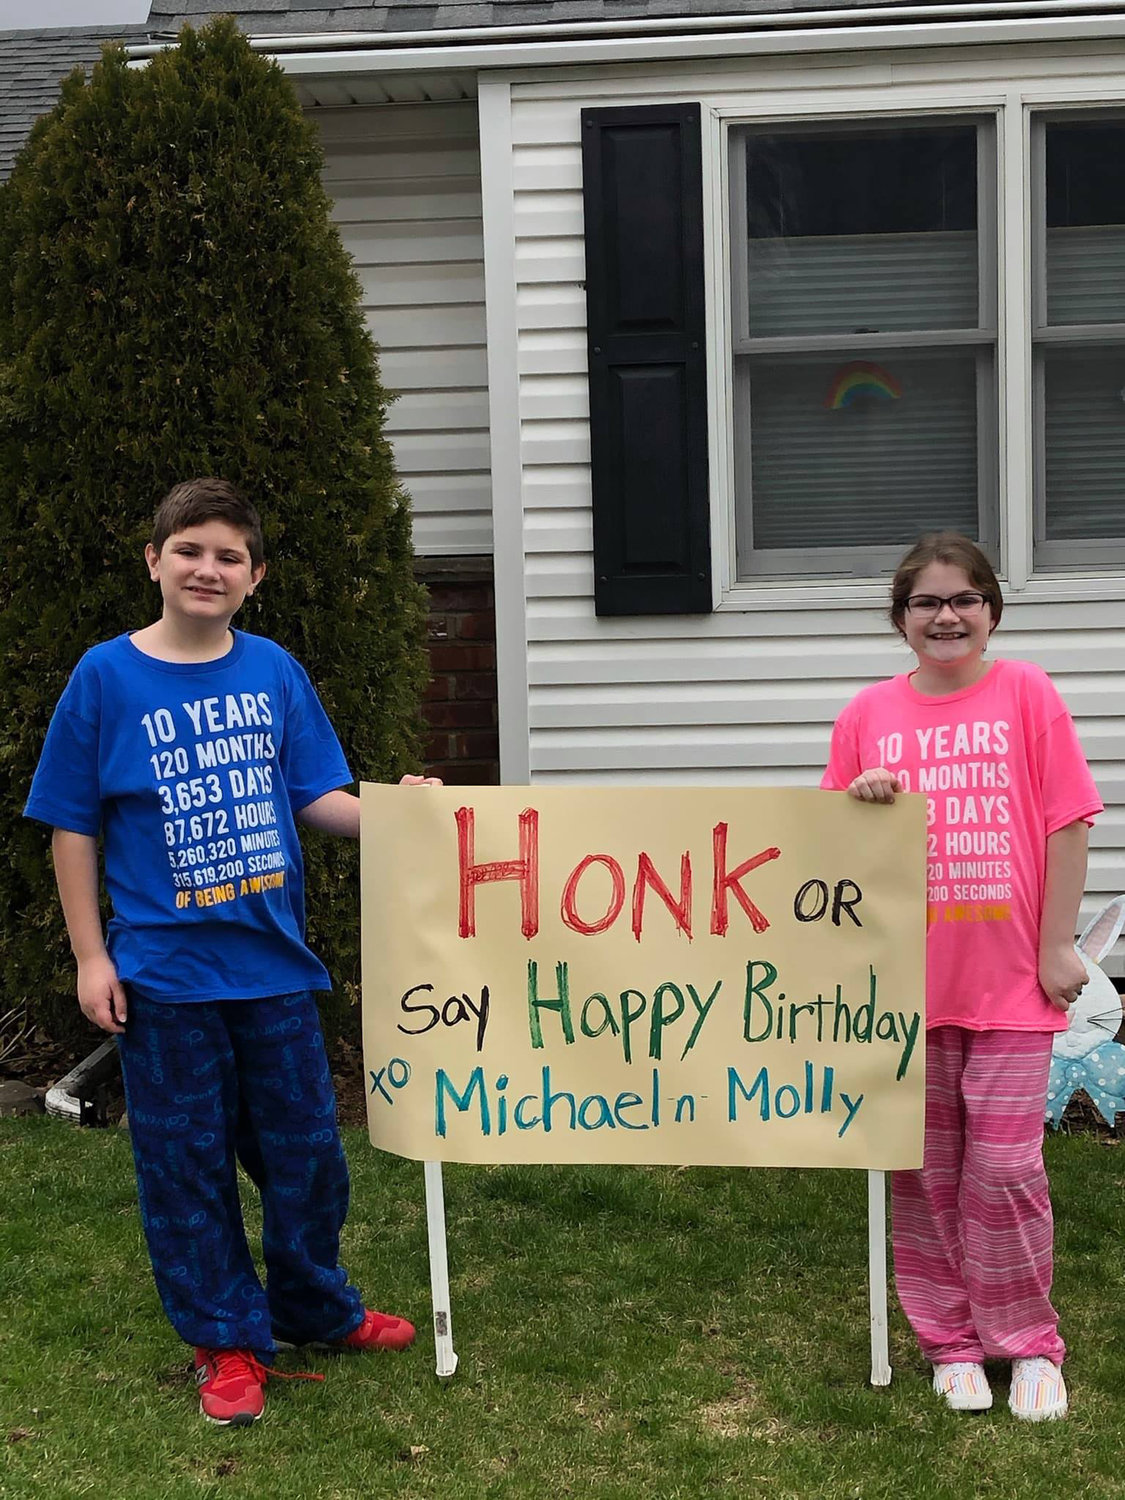 Michael and Molly Talbot's mother, Deborah, erected a sign on their front yard asking passersby to honk for the twins' birthday.